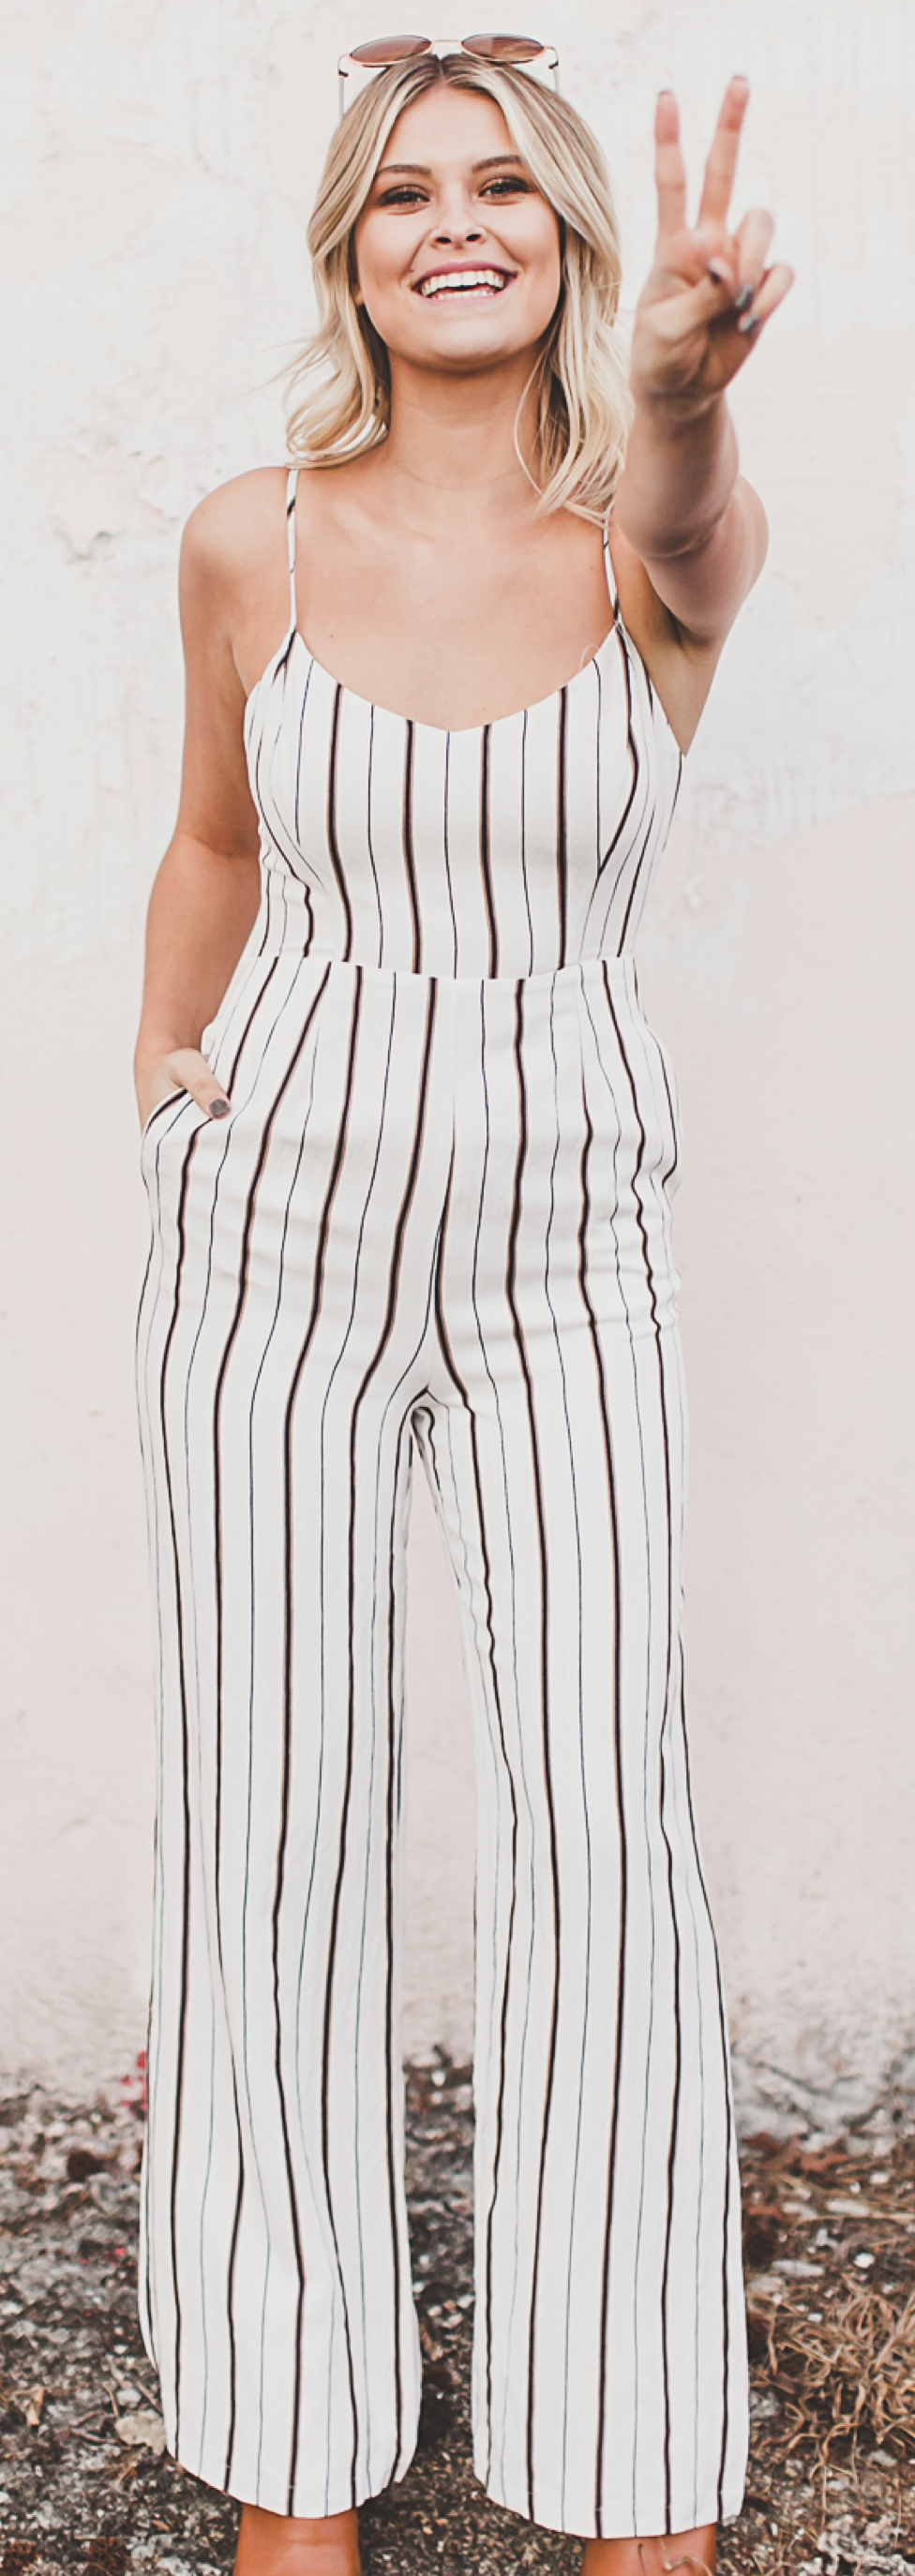 to wear - Jumpsuits trend video